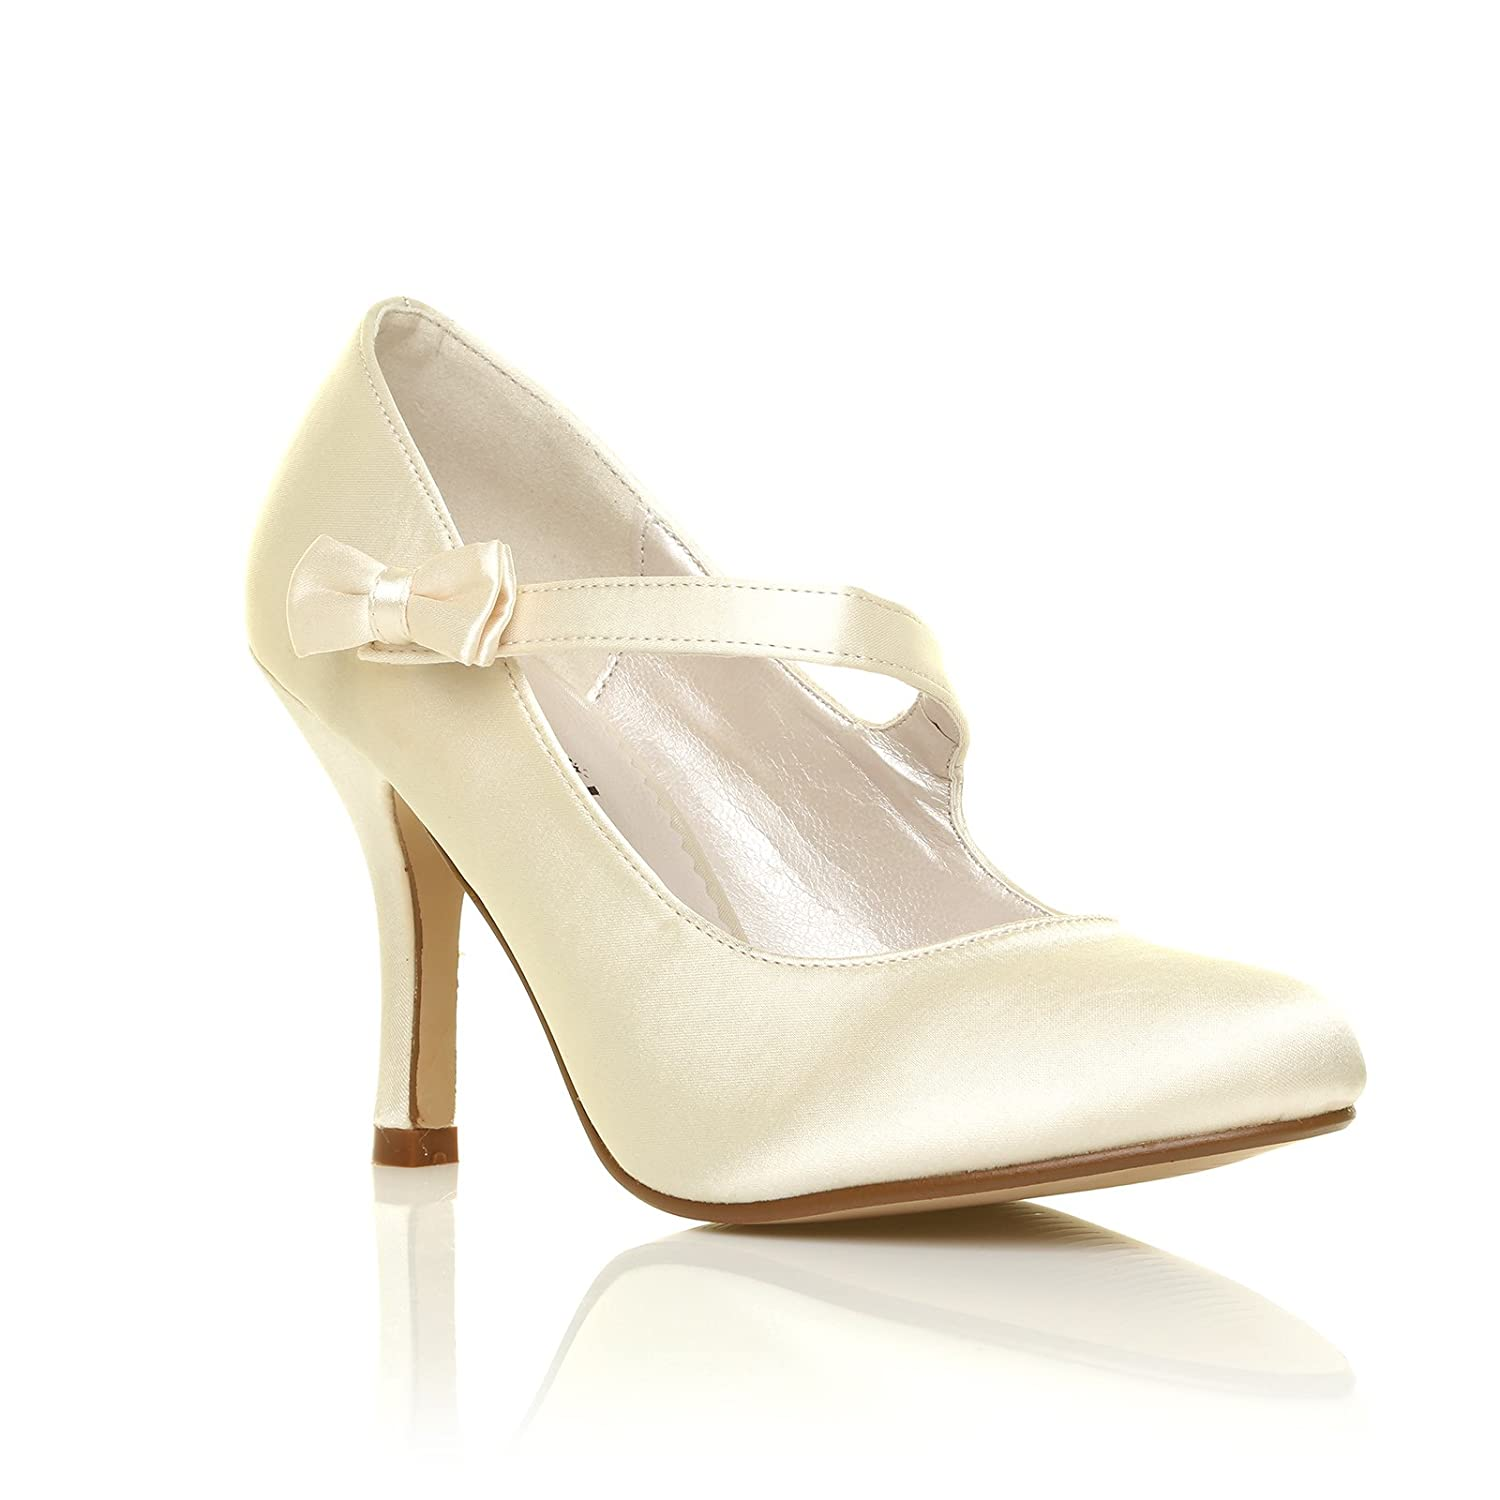 bb56d06a1861 CHARLOTTE Ivory Satin High Heel Bridal Bow Mary Jane Shoes Size UK 6 EU 39   Amazon.co.uk  Shoes   Bags